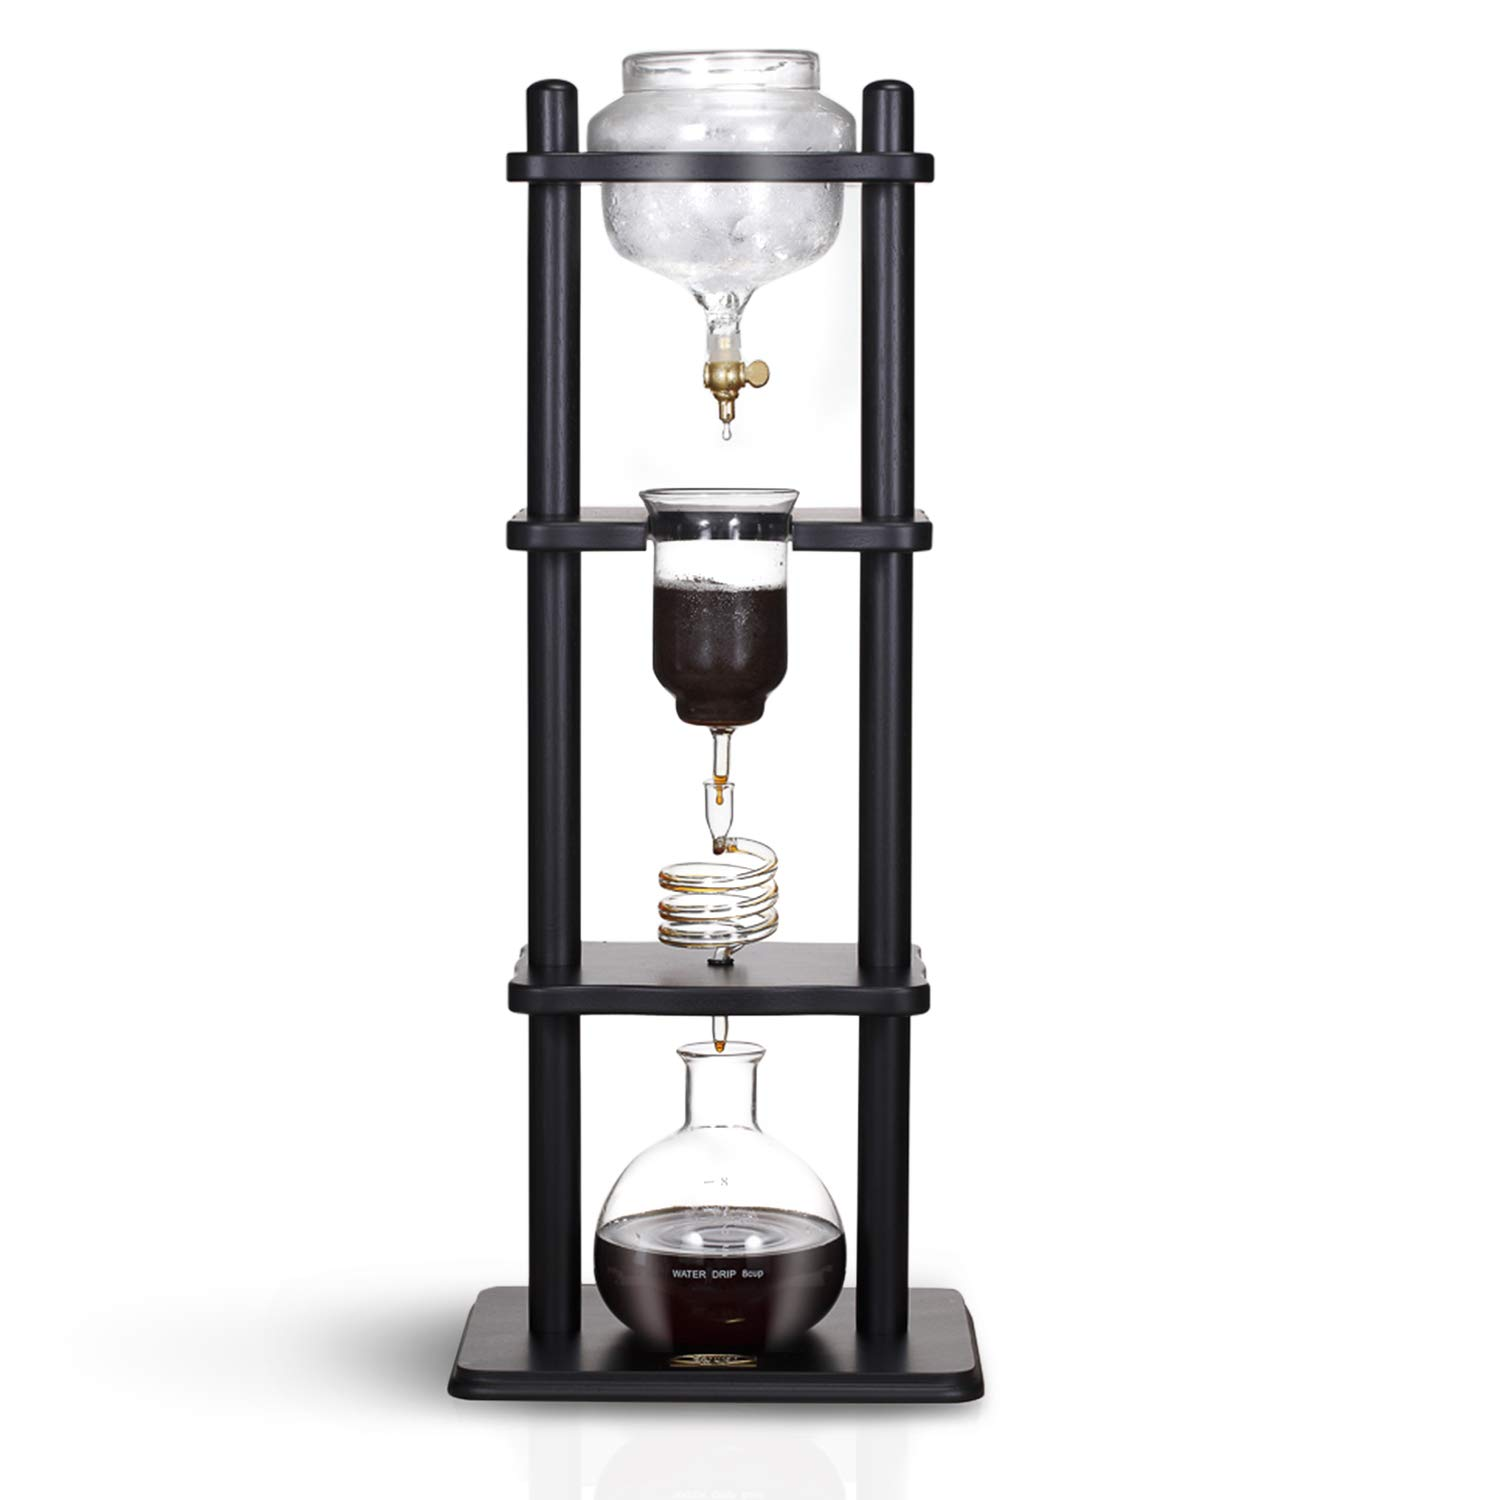 Yama Glass 6-8 Cup Cold Drip Maker Straight Black Wood YAMCDM8SBK